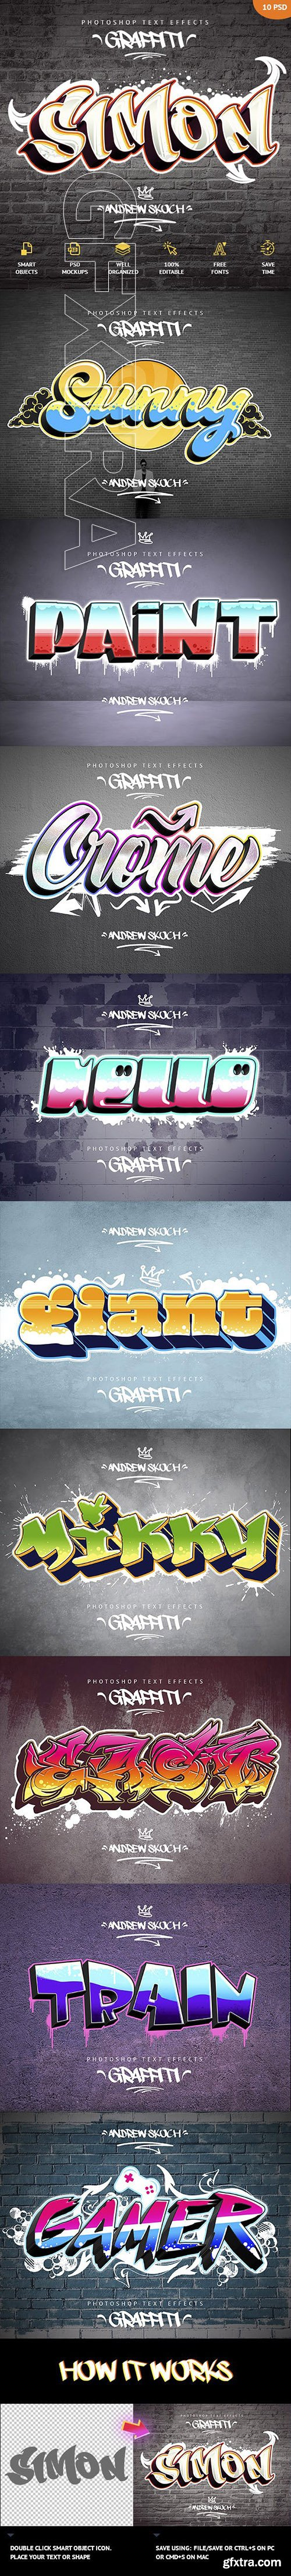 GraphicRiver - Graffiti Text Effects - 10 PSD 23797200